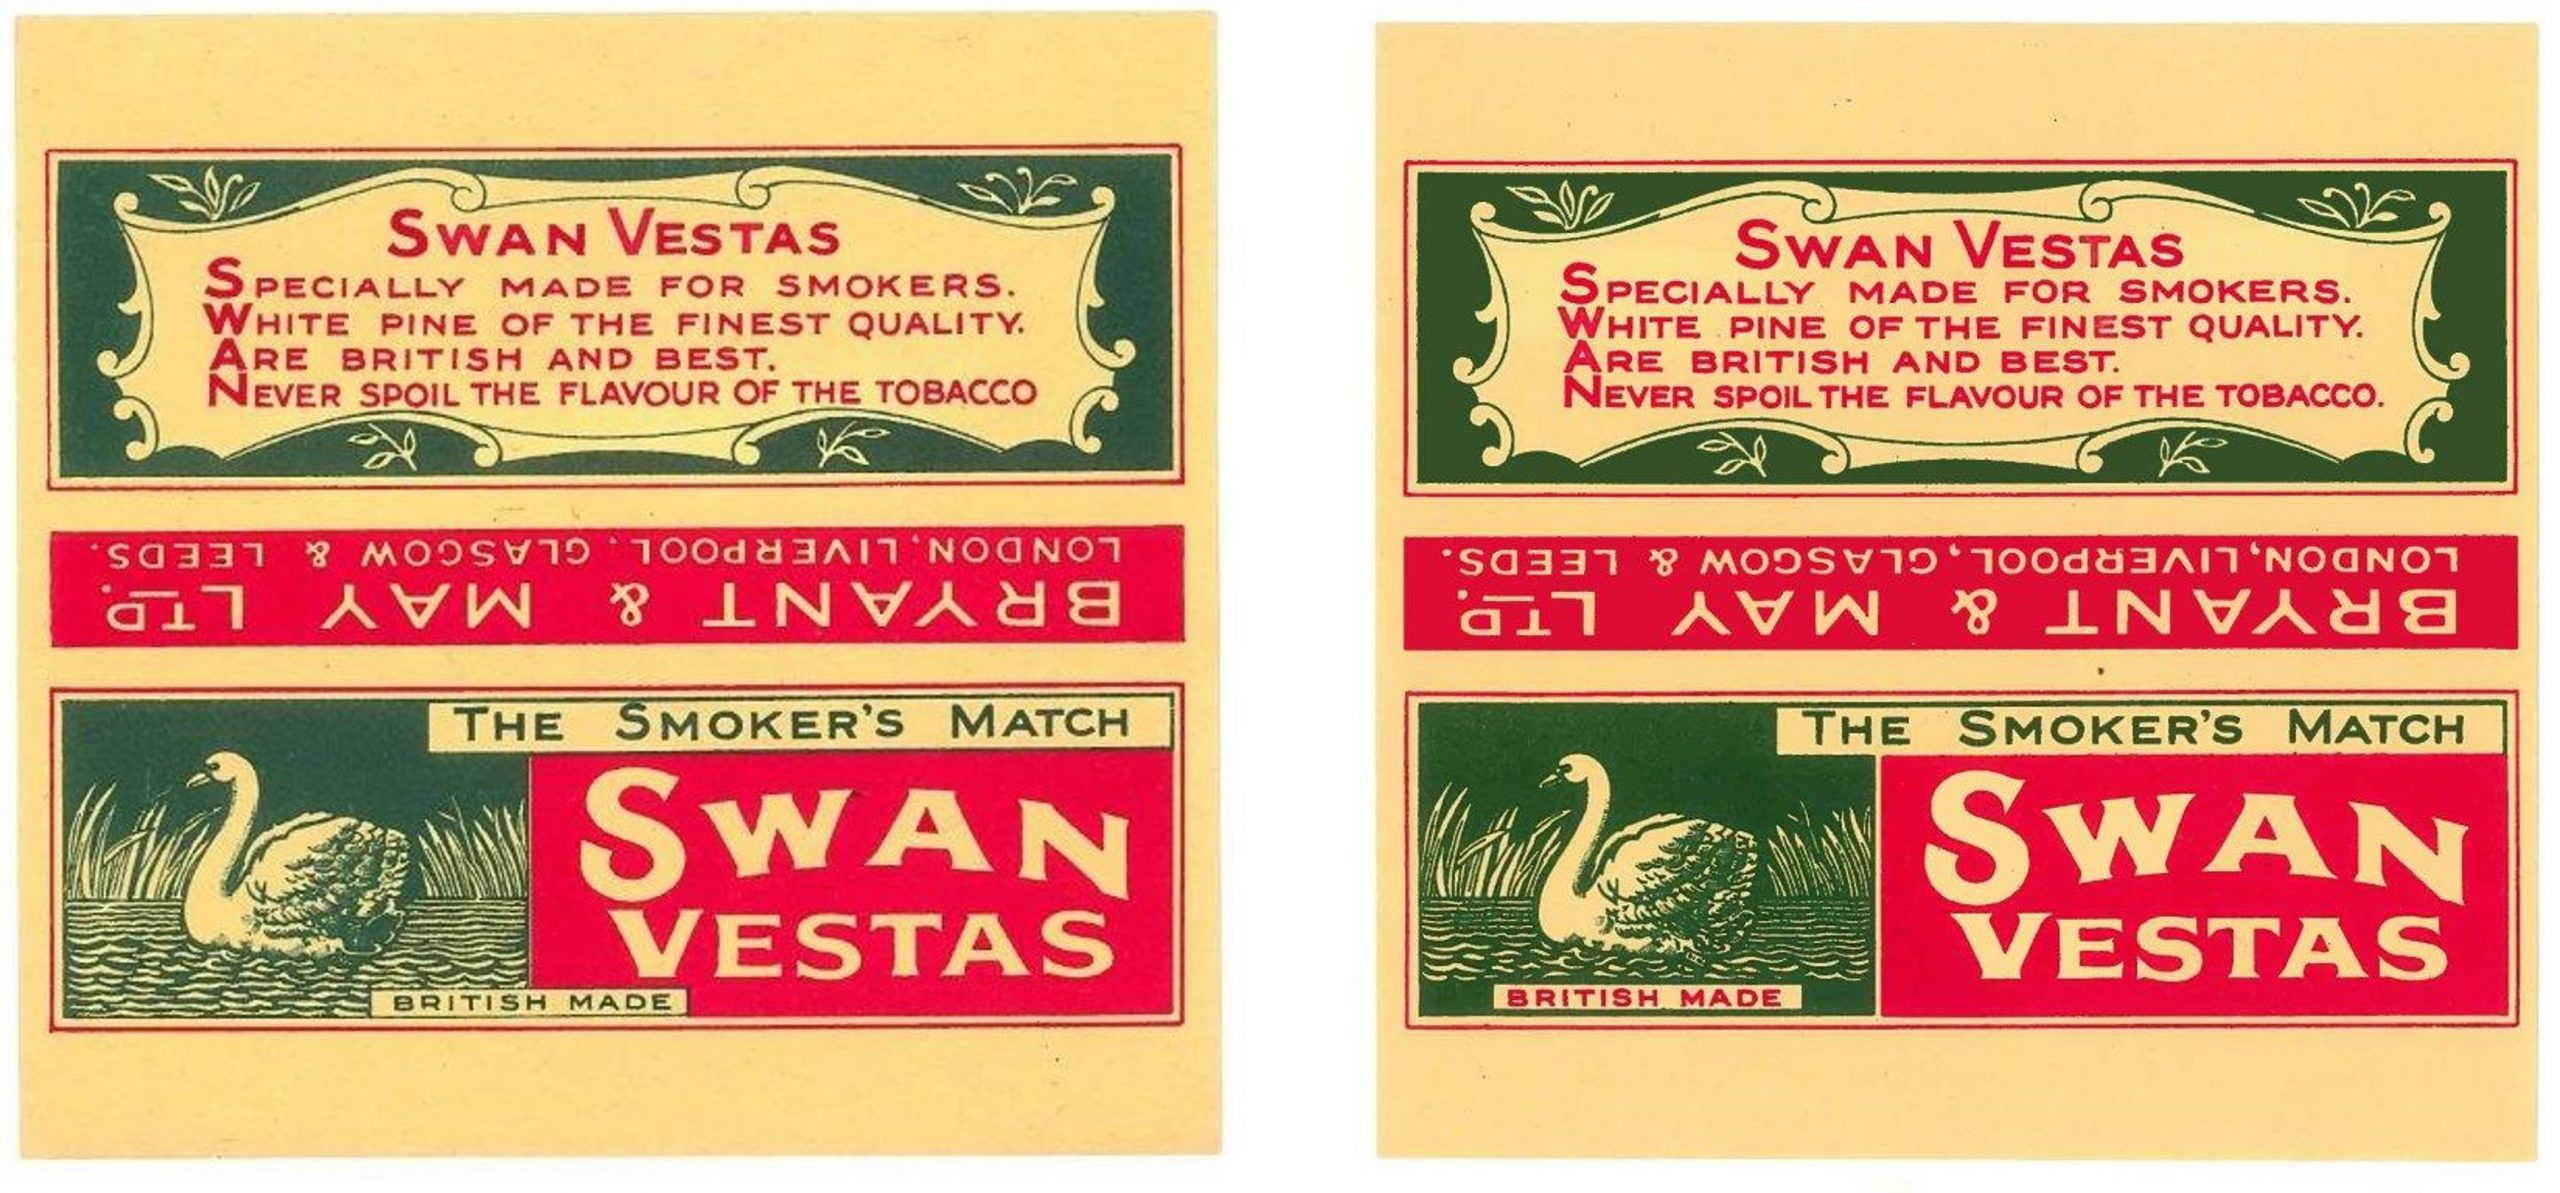 1931 and 1938 No. 15 labels